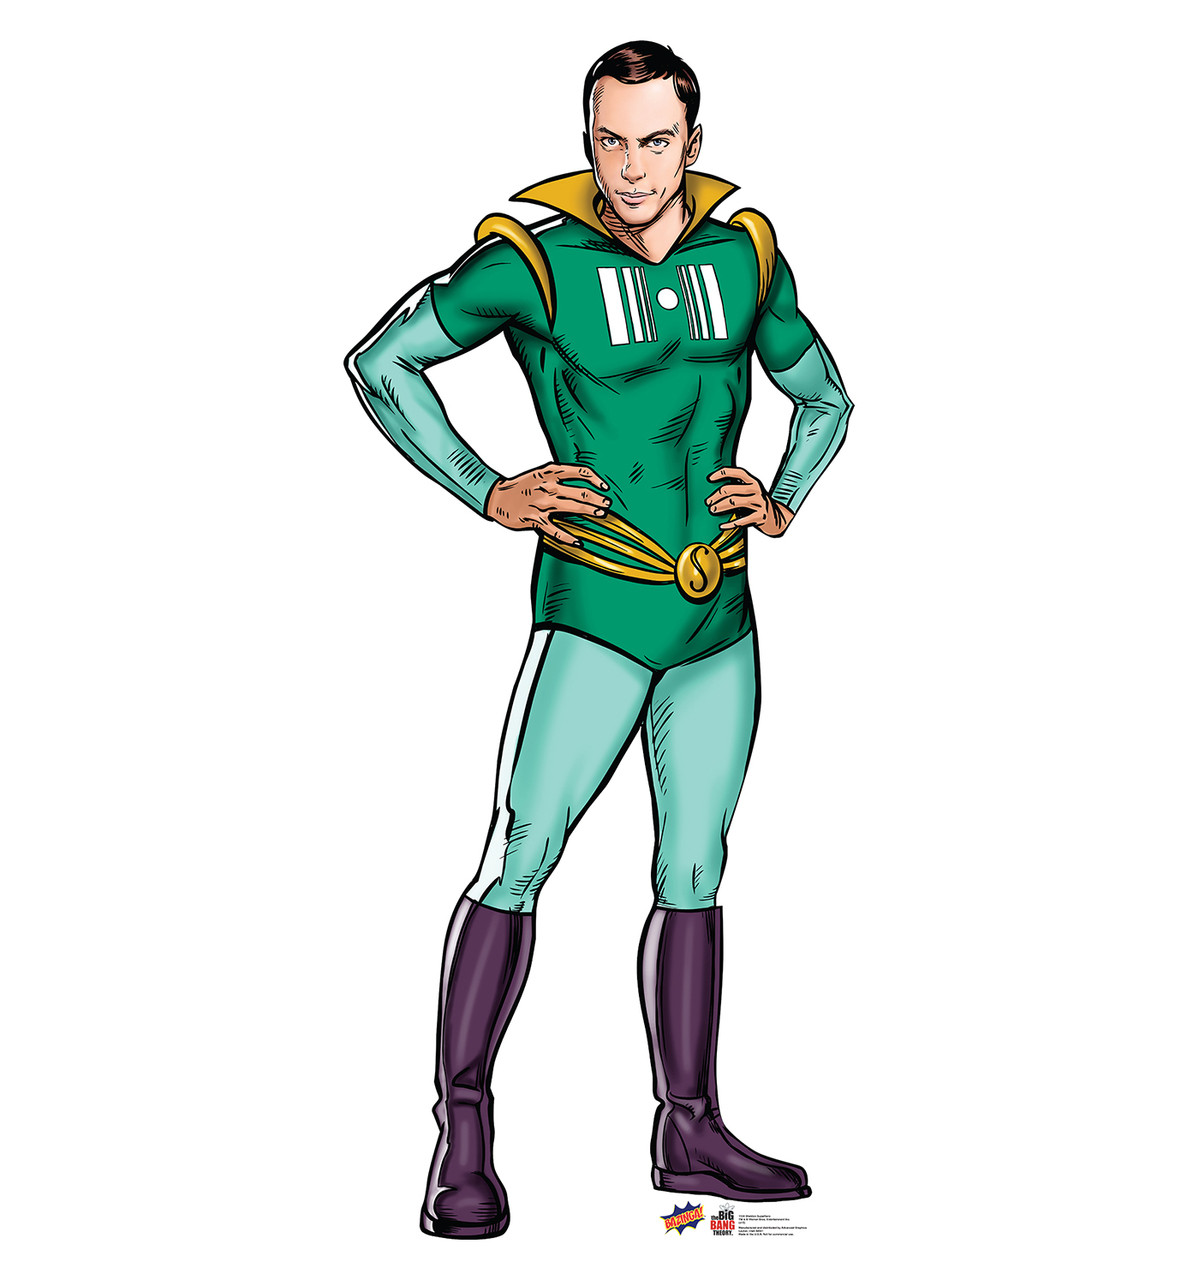 Sheldon Super Hero - Big Bang Theory - Cardboard Cutout